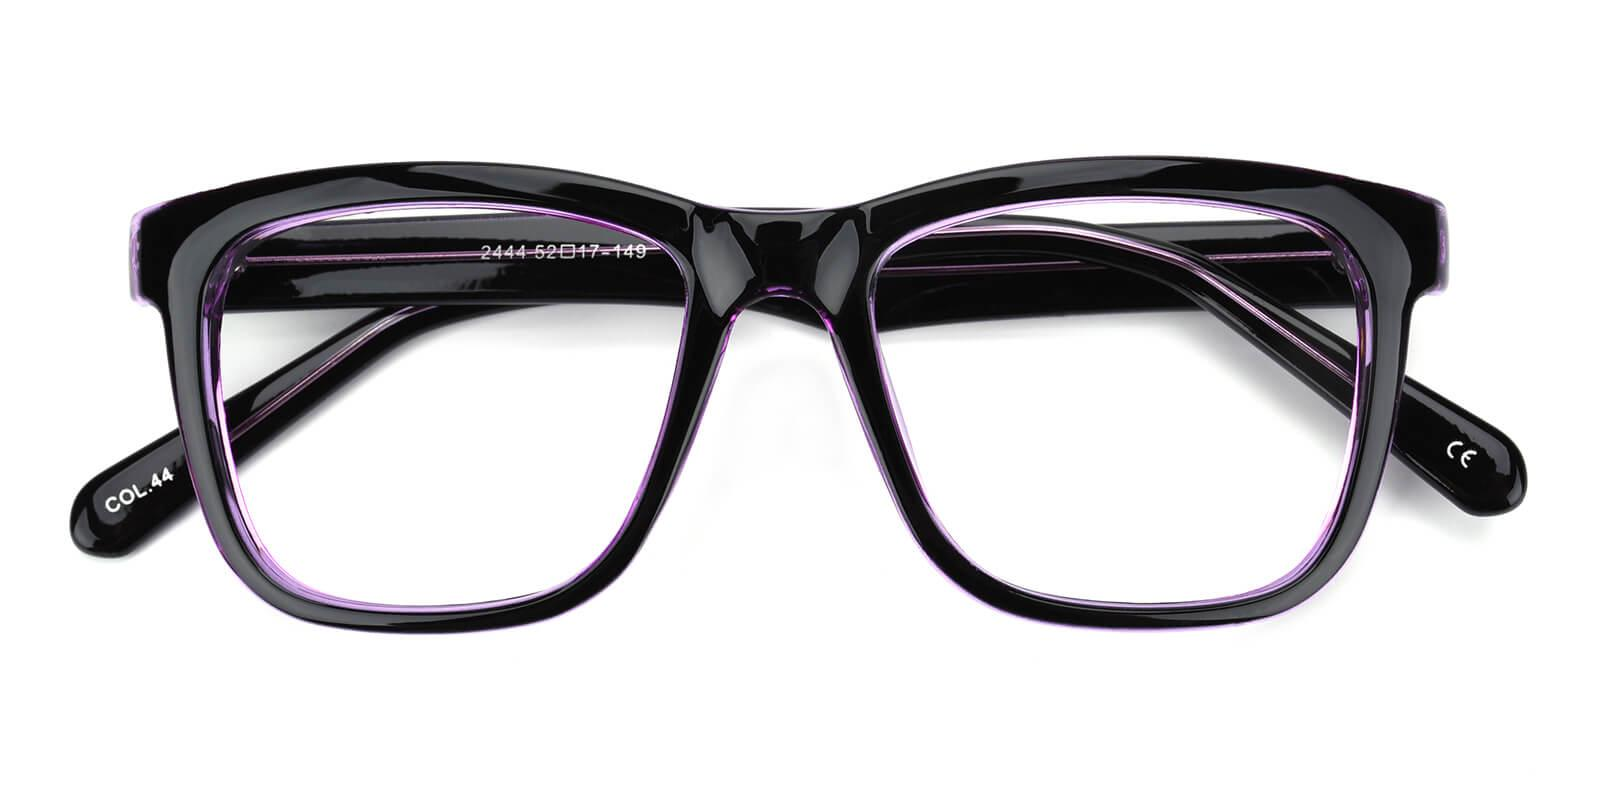 Colaan-Purple-Square-Plastic-Eyeglasses-detail